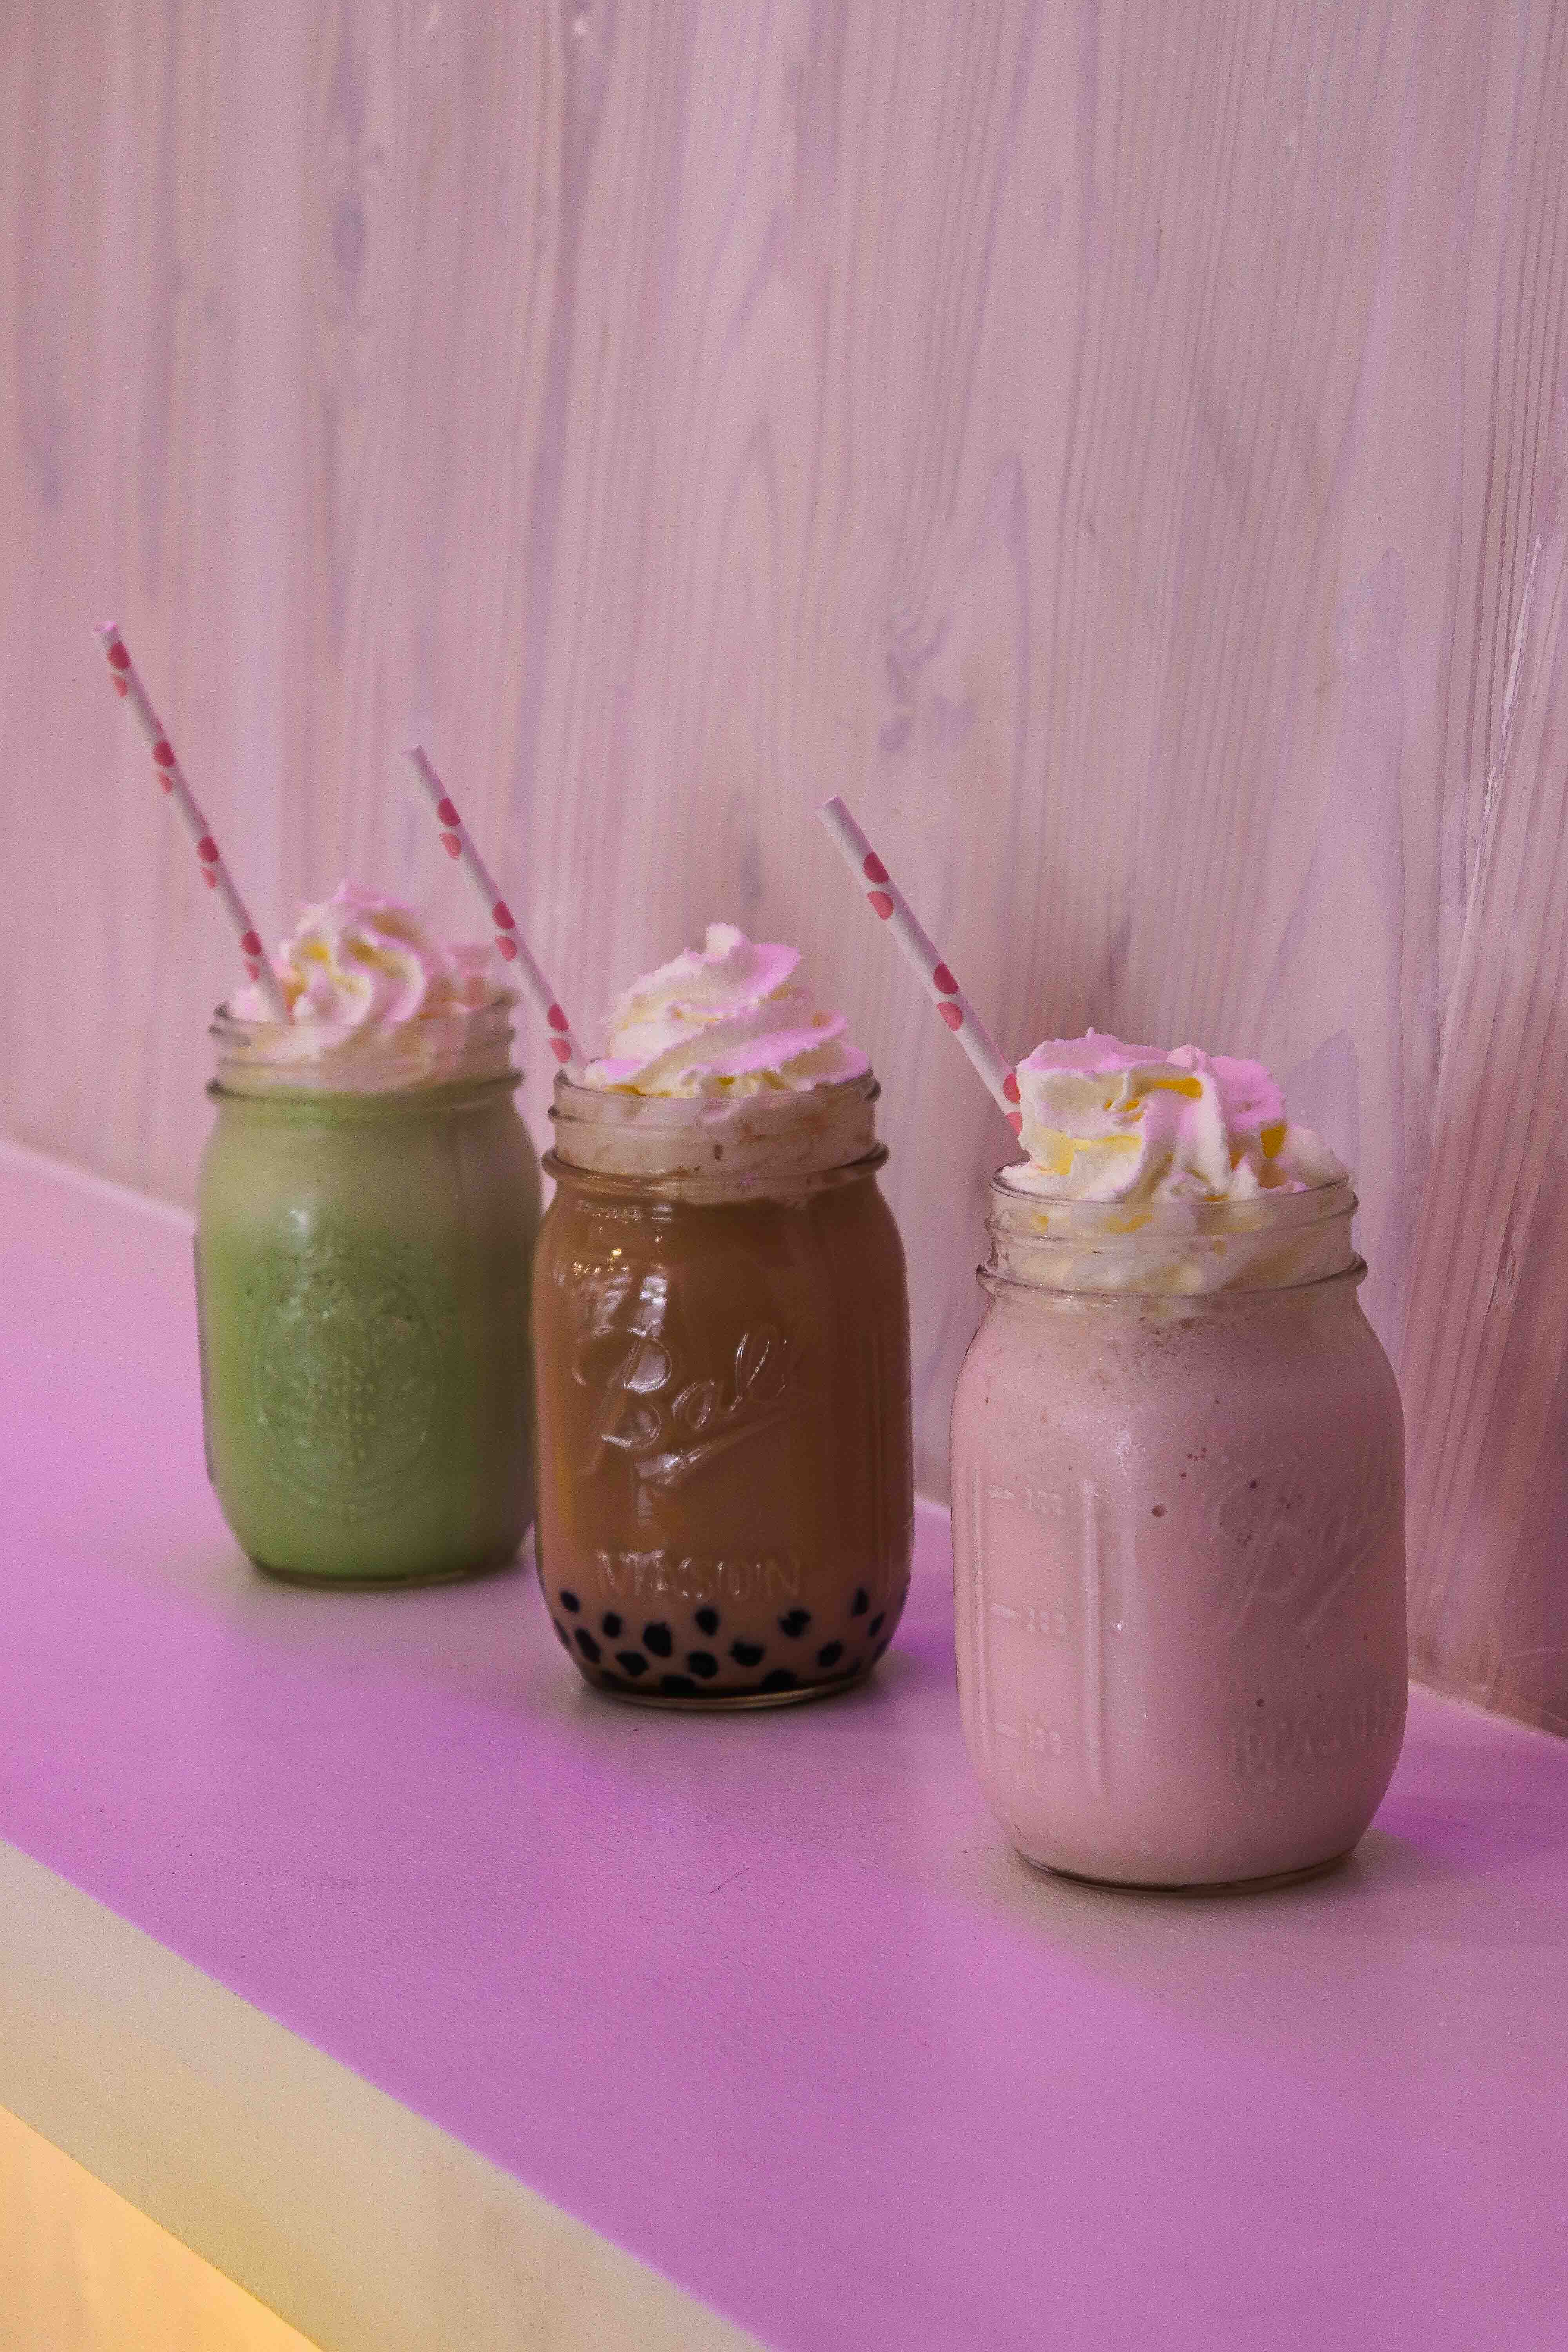 Our votes go to Milk Barn's green tea, brown sugar with pearls, and strawberry milkshakes